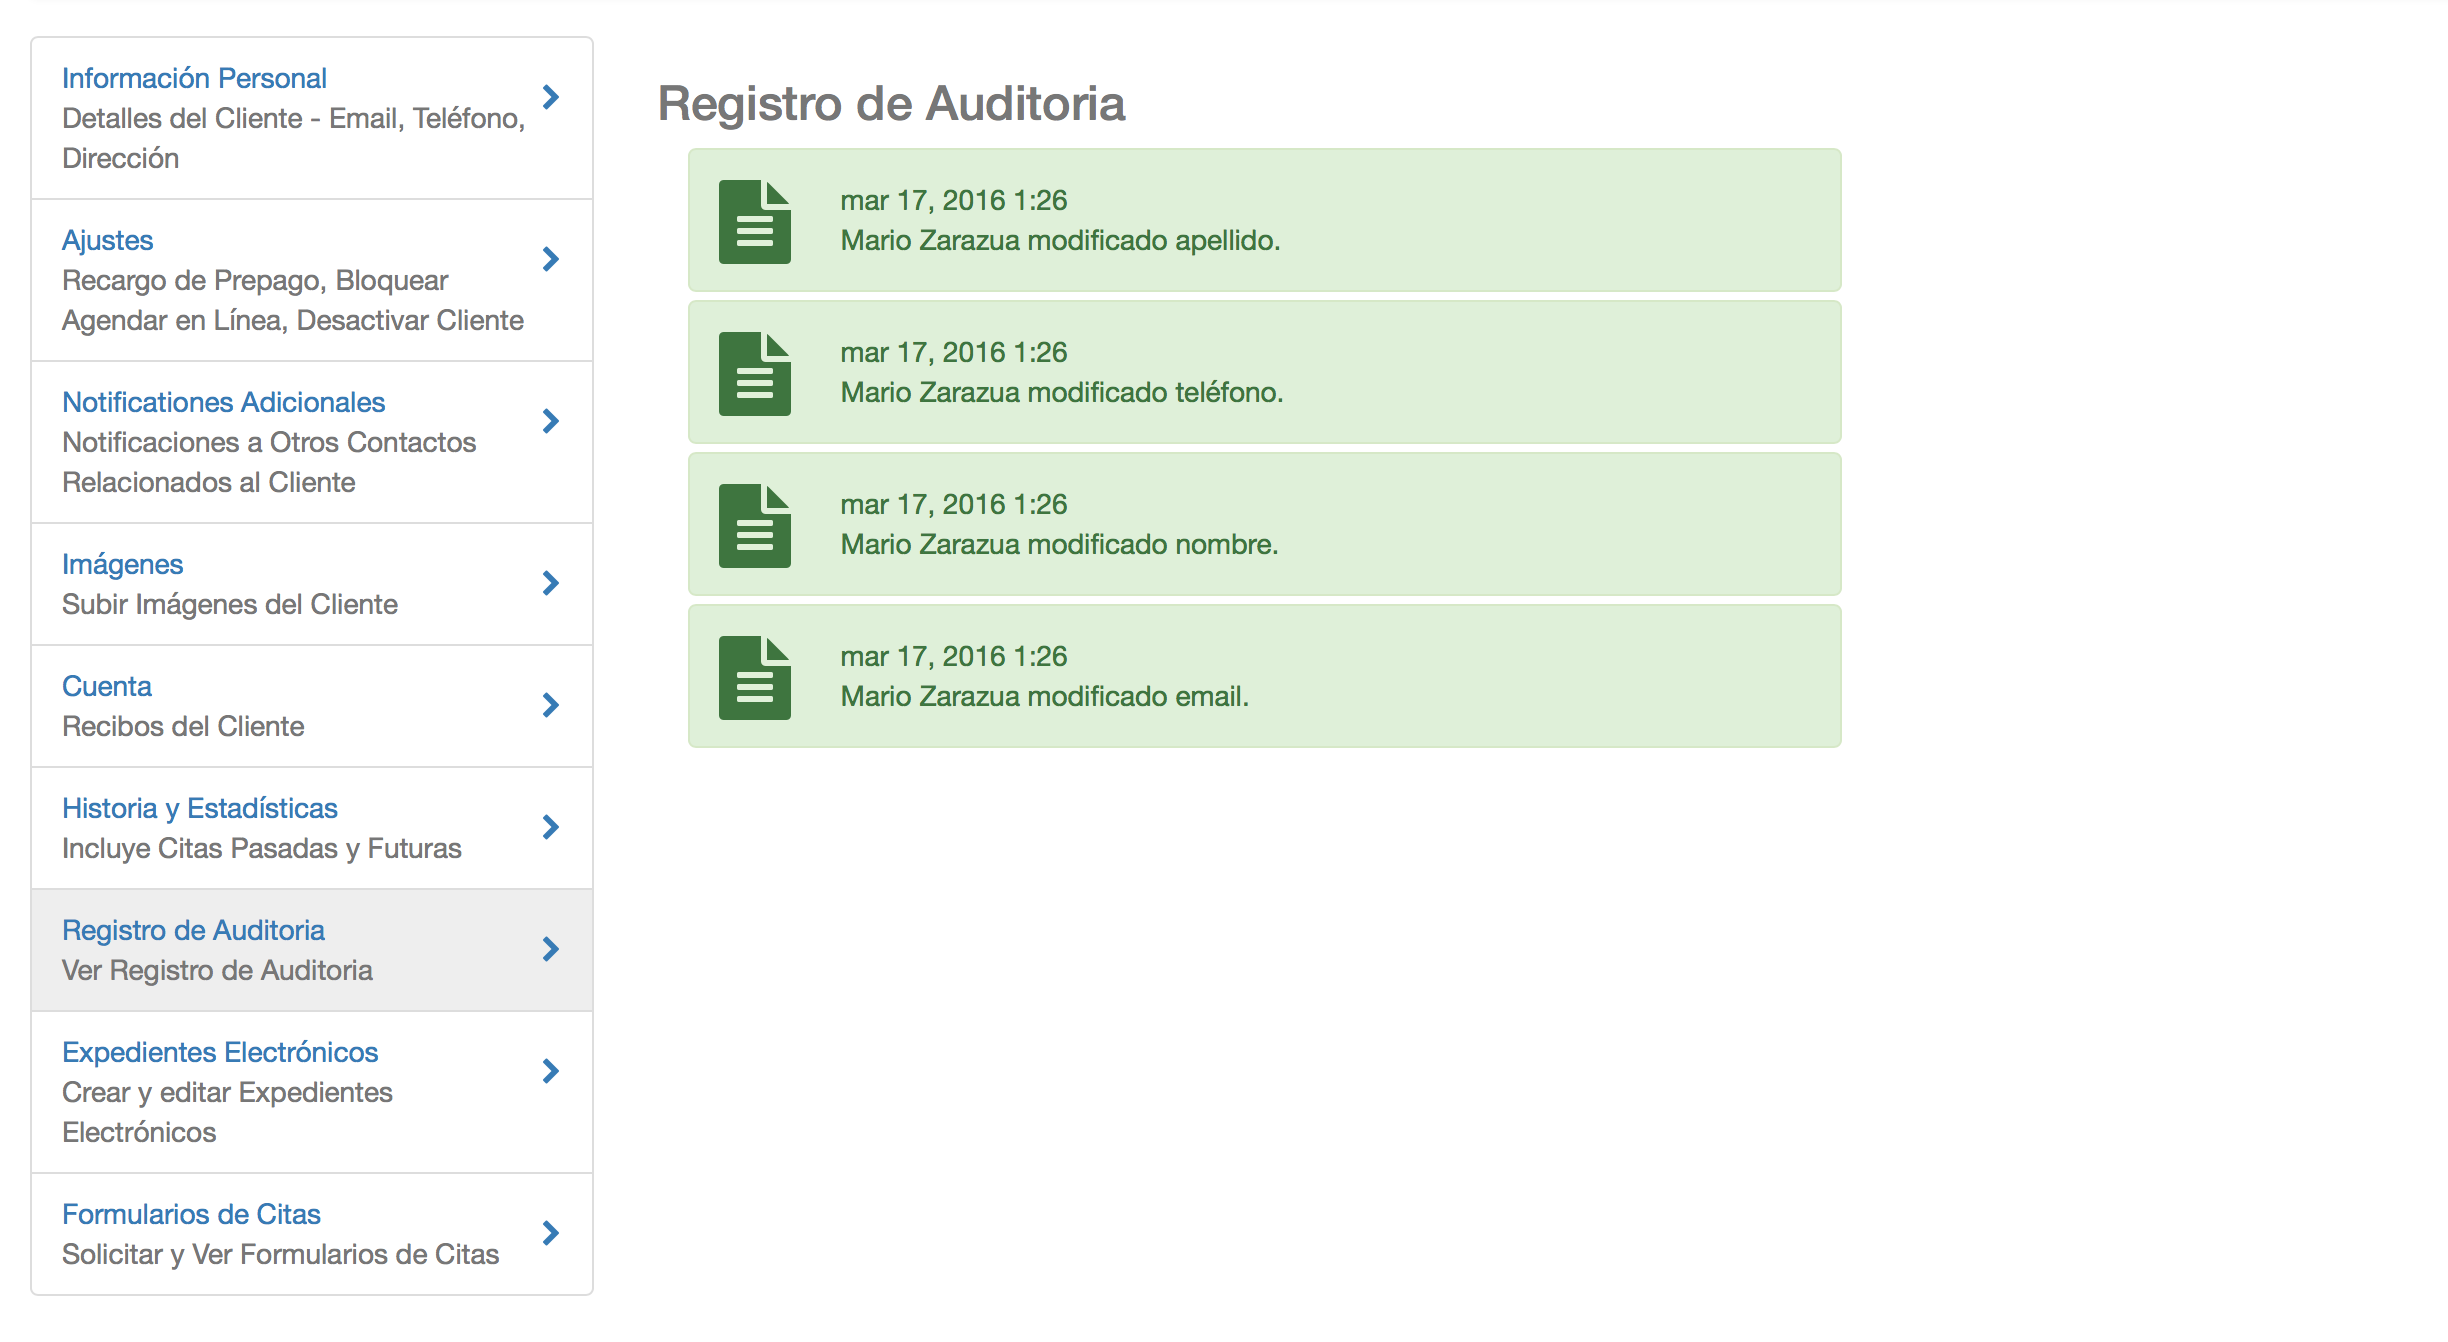 Registro de Auditoria